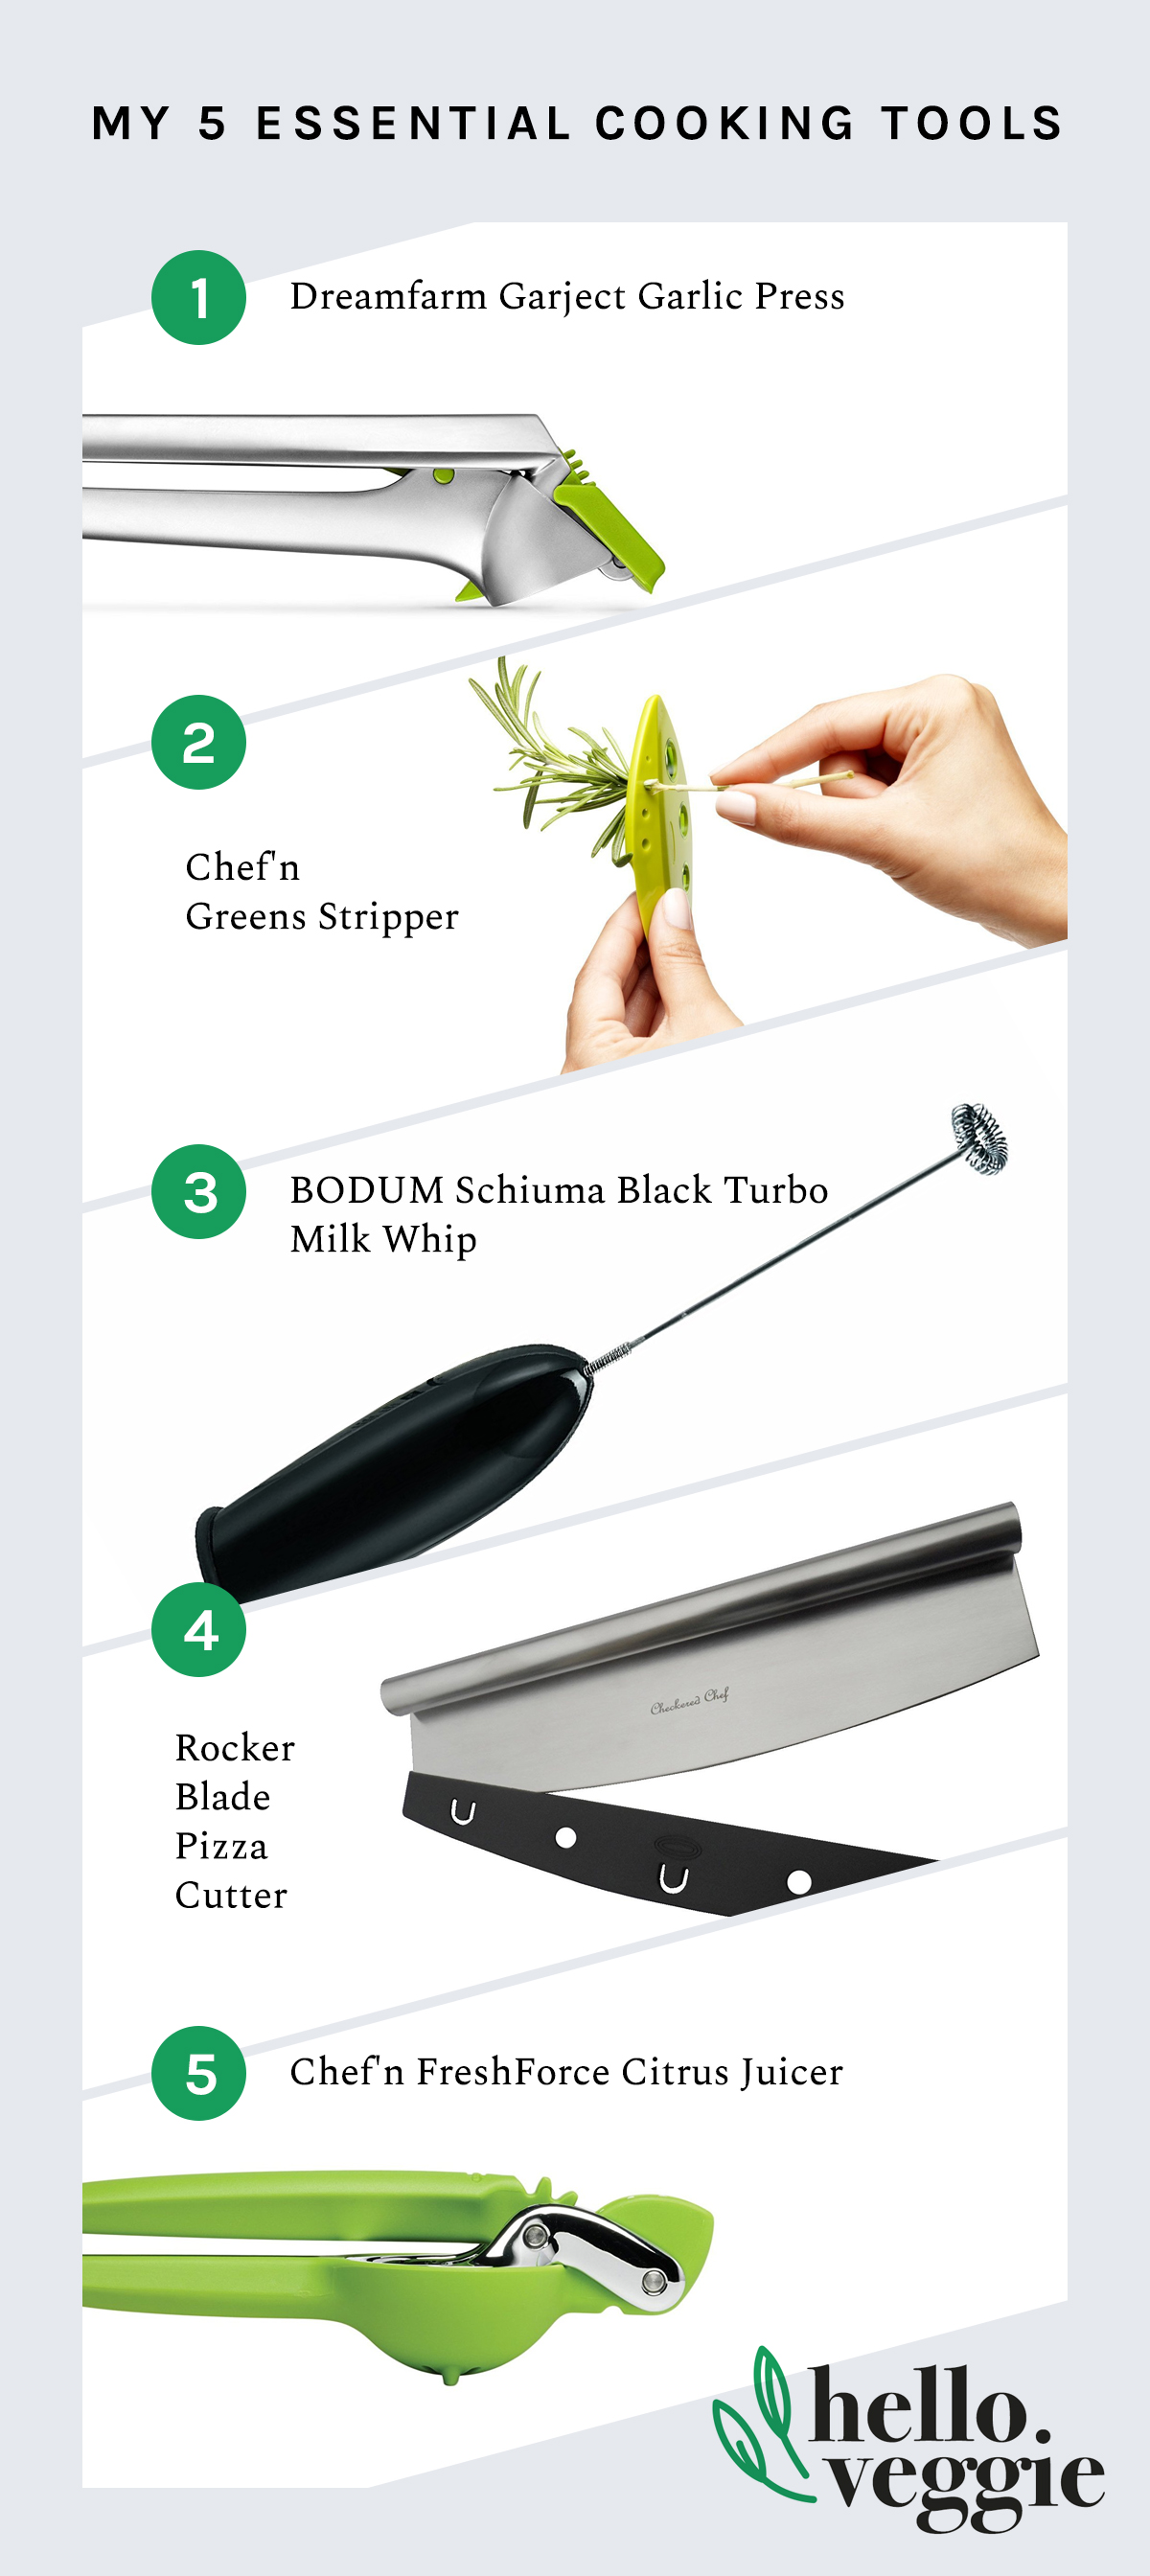 5 Essential Cooking Tools From My Minimalist Kitchen